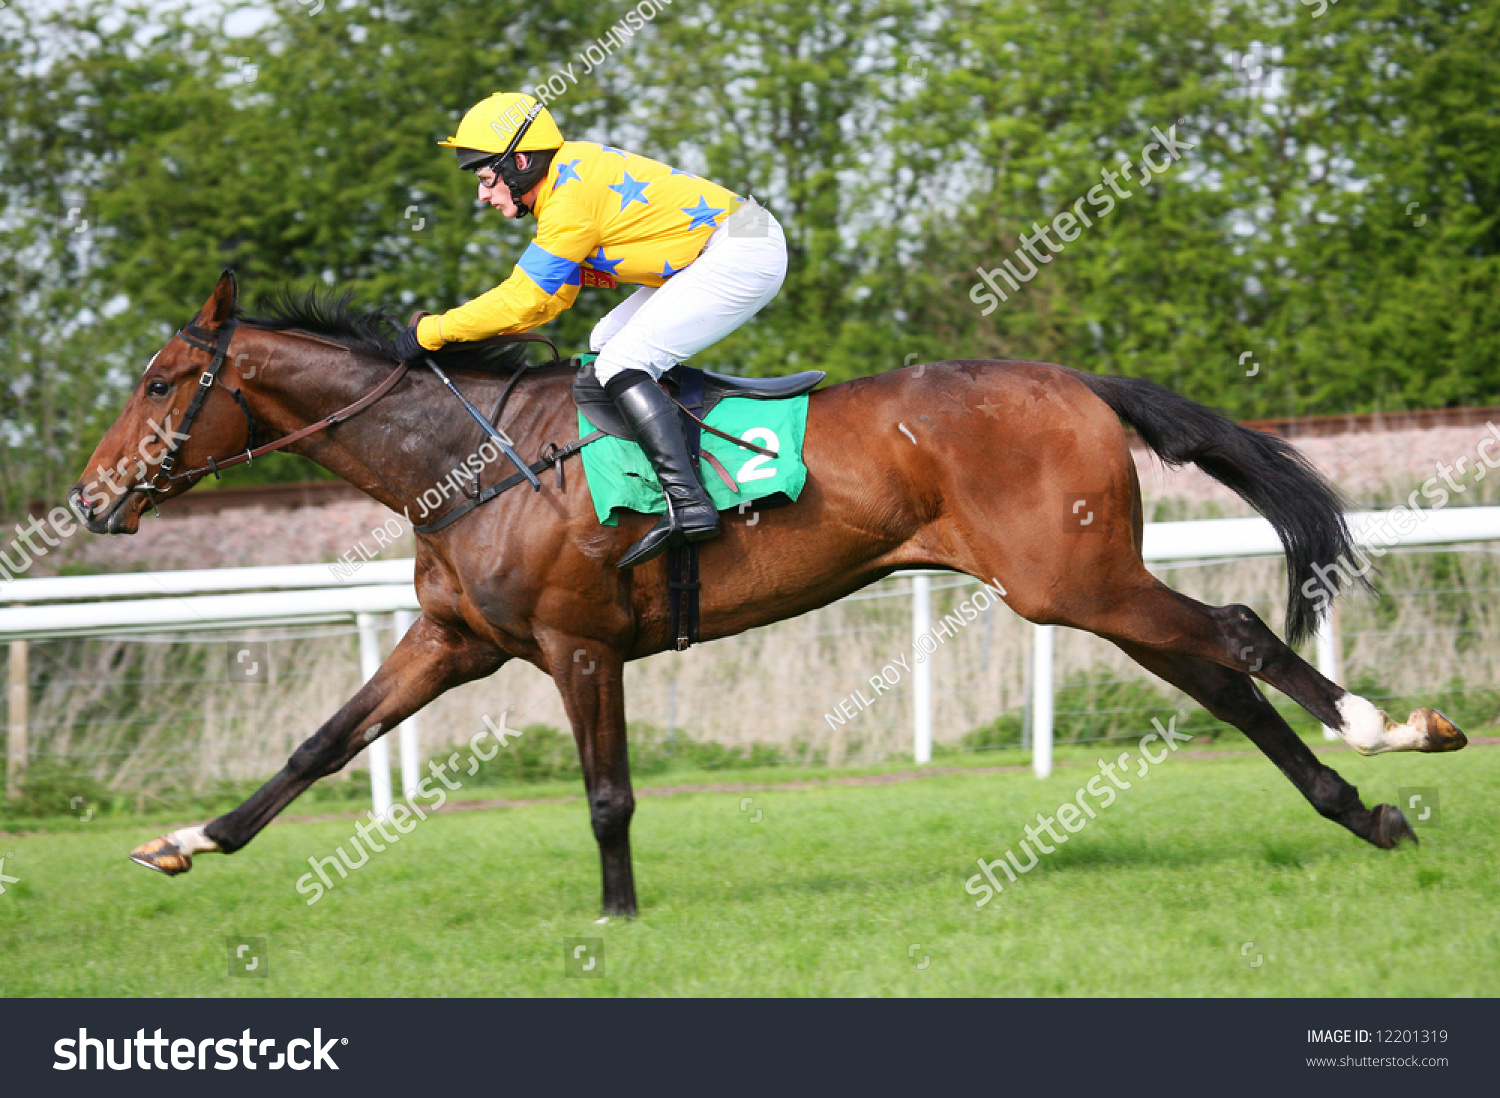 Race Horse And Jockey Running At Speed Stock Photo ...